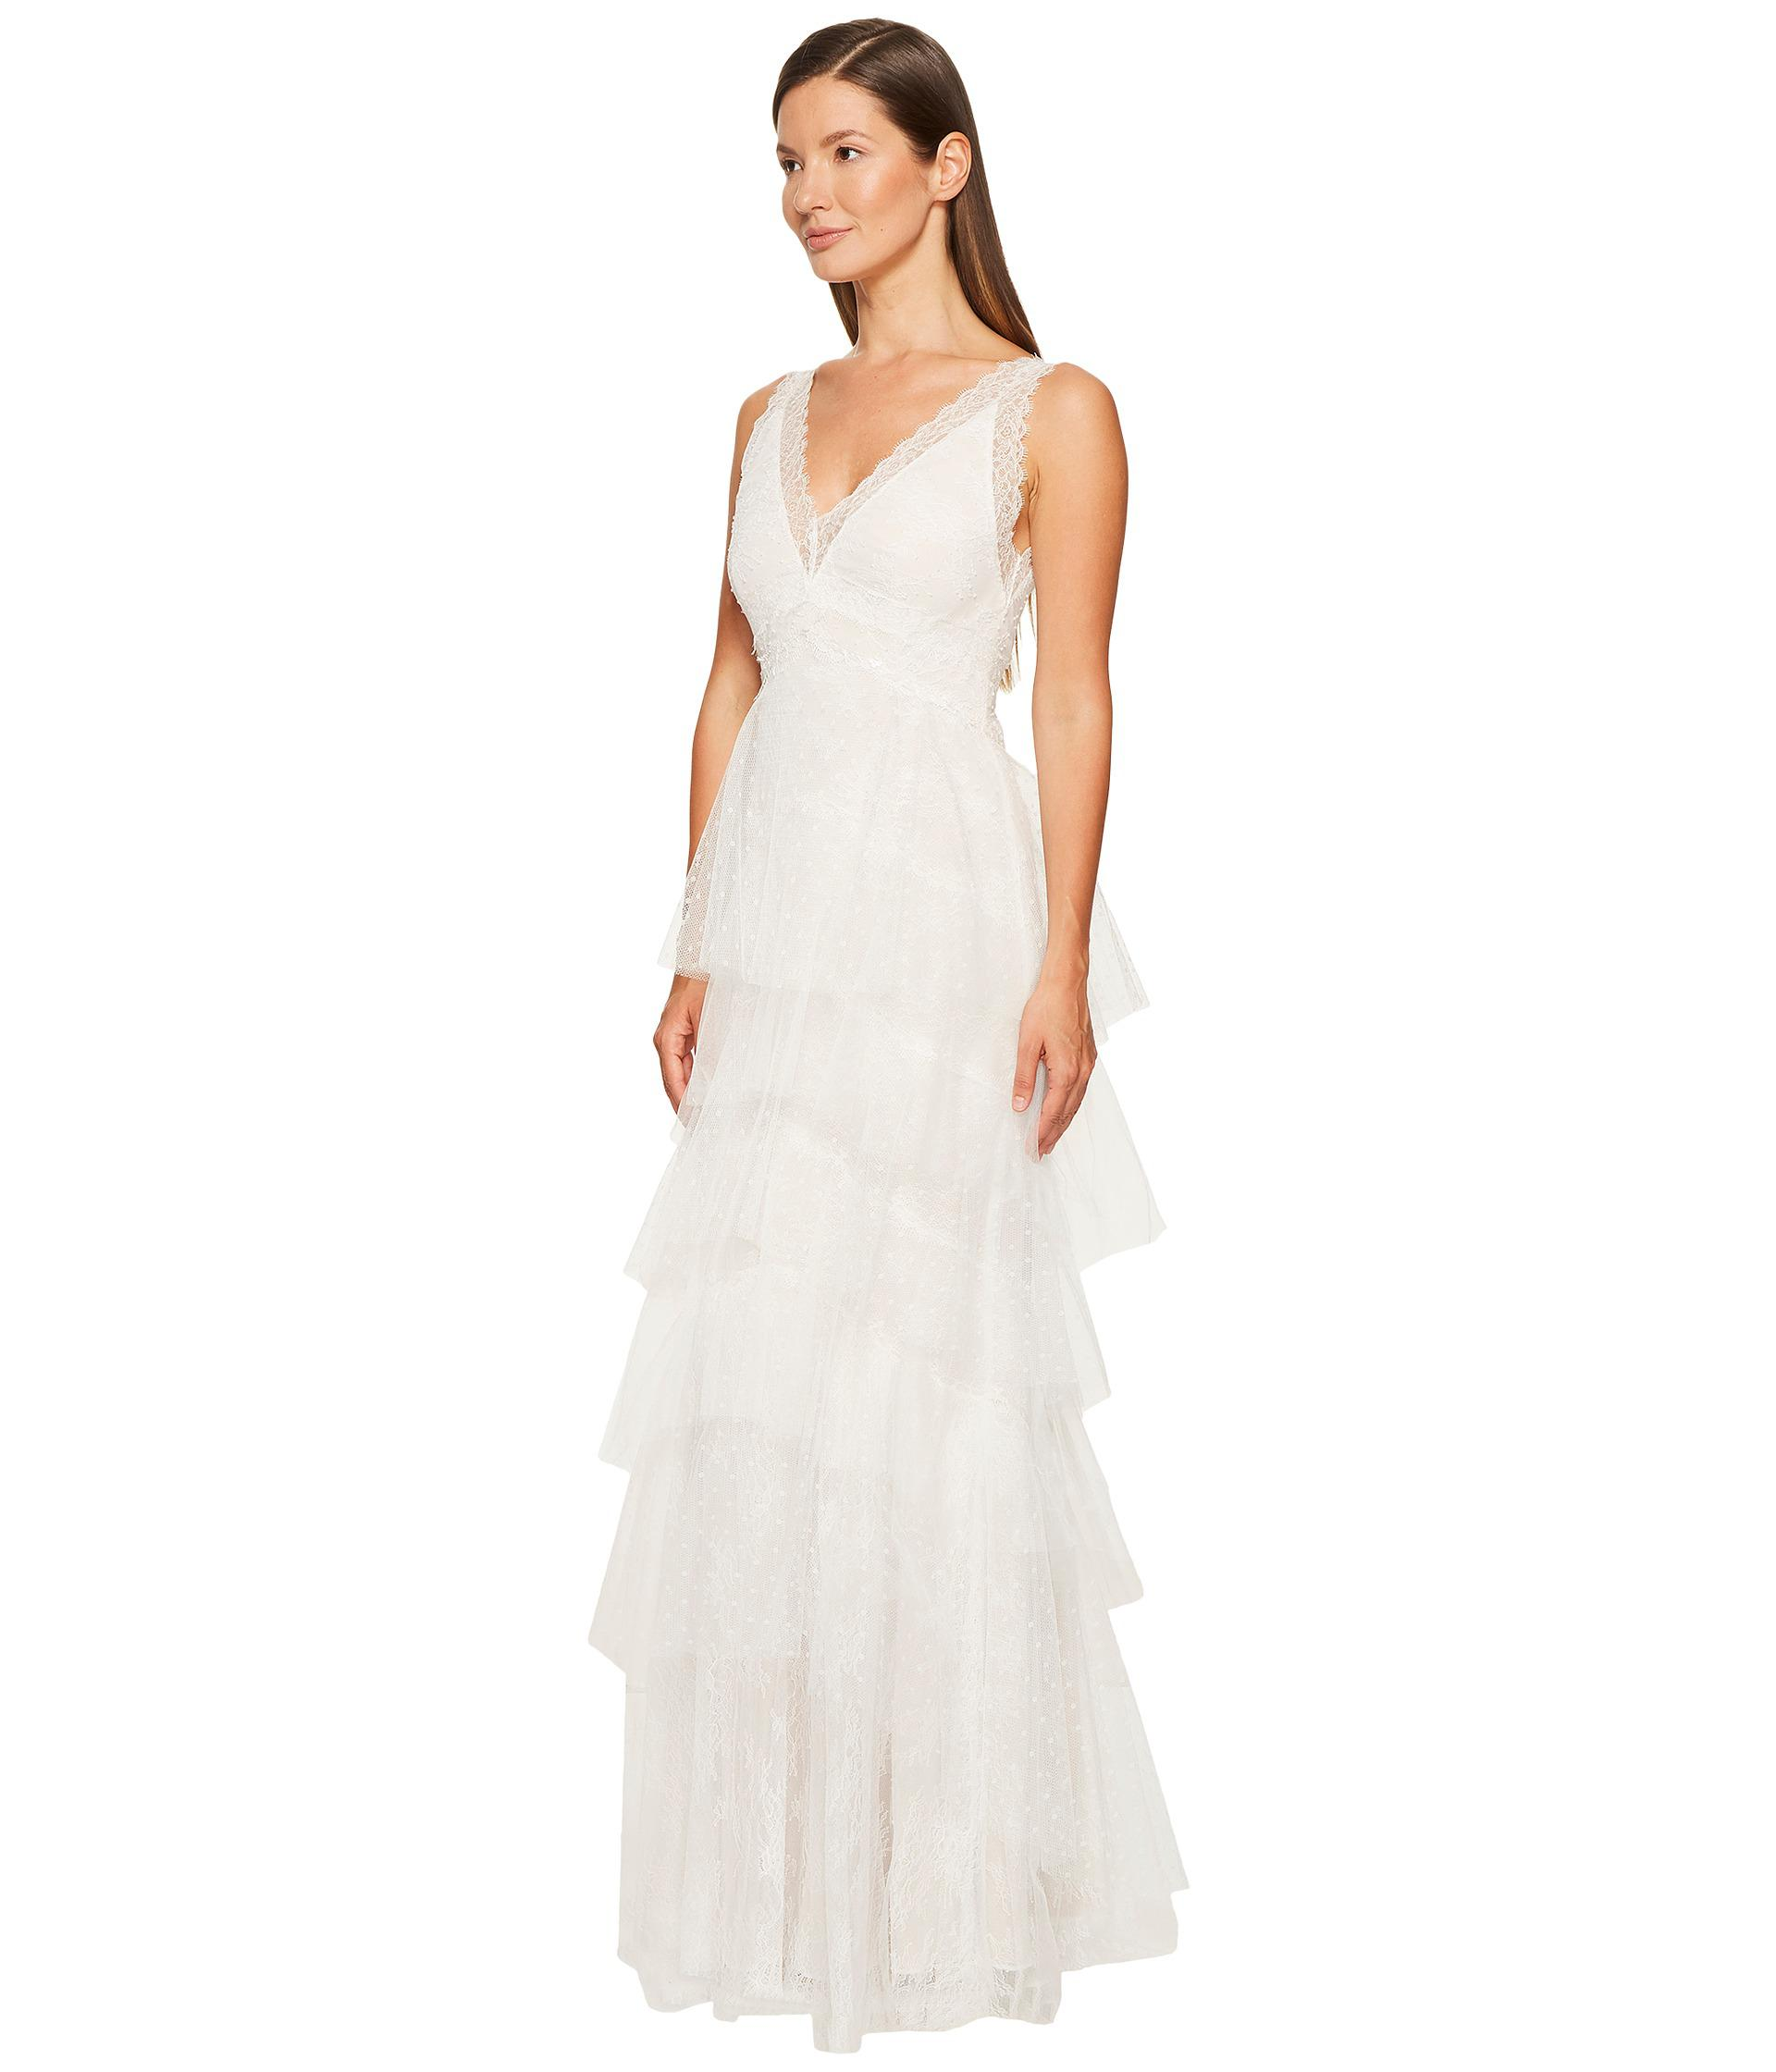 47d77cac48 Marchesa notte Lace Gown W/ Tiered Point-d'esprit And Tulle Skirt in ...